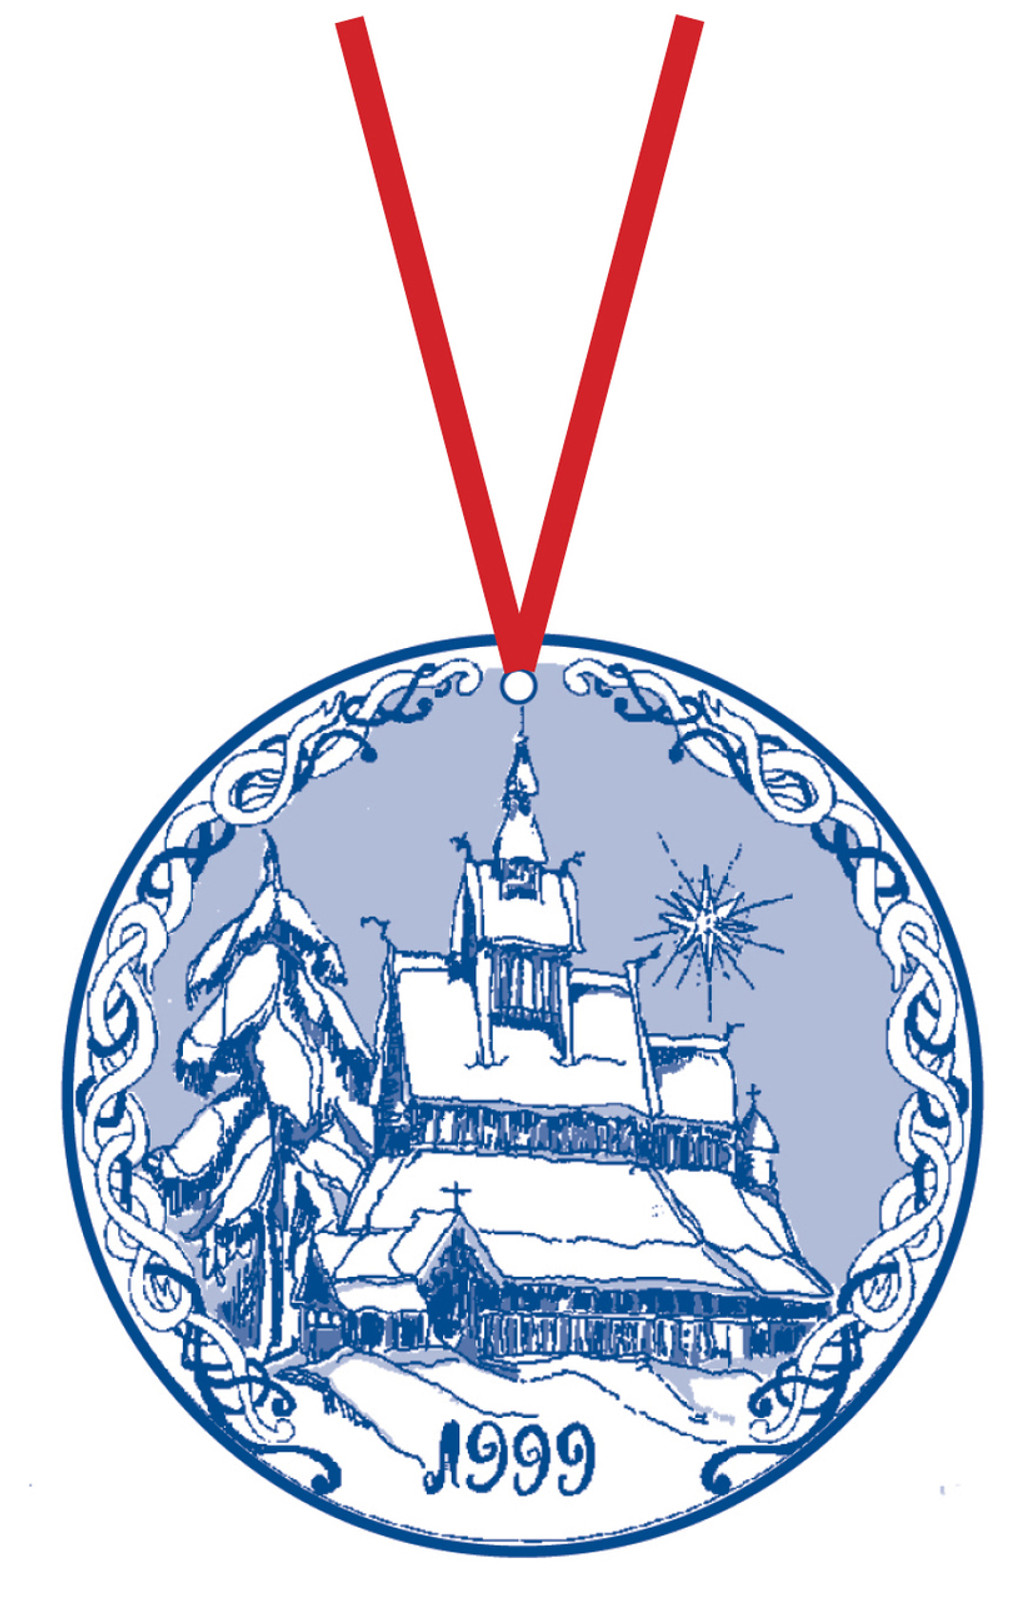 1999 Stav Church Ornament - Hopperstad. Made by Norse Traditions and available at The Nordic Shop.